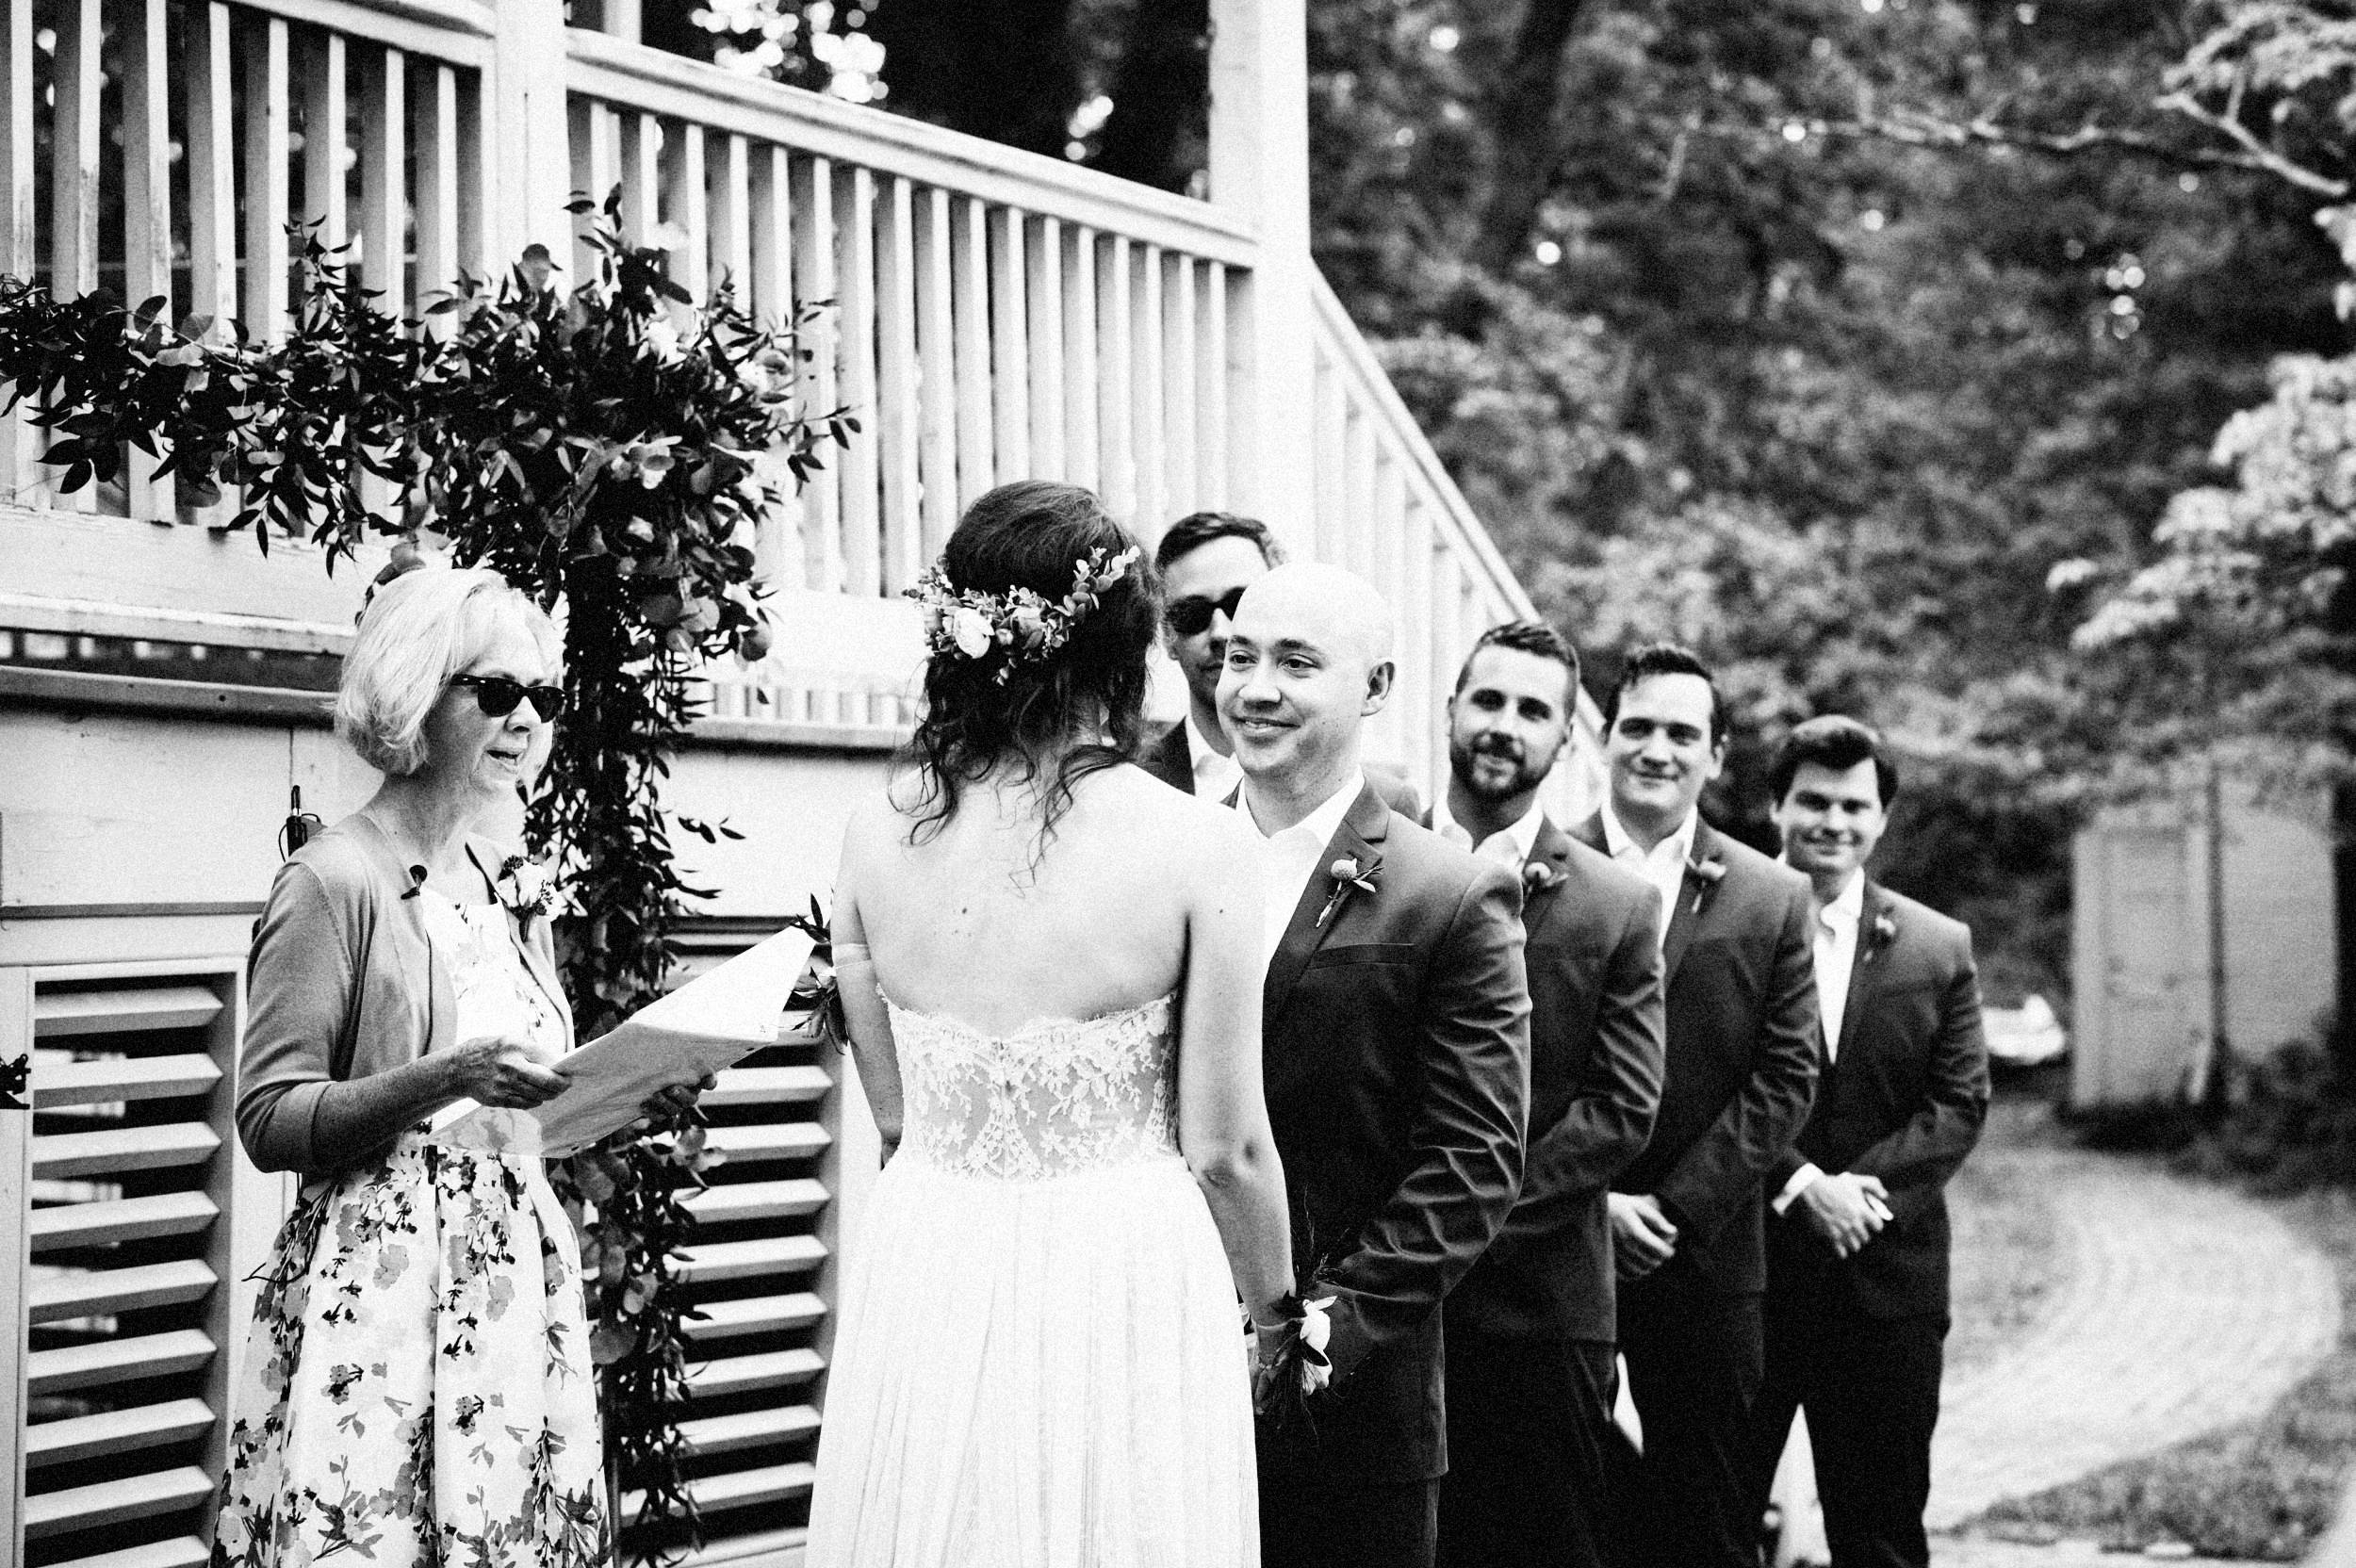 cassie-drew-wedding-farmington-sarah-katherine-davis-photography-324editedit.jpg